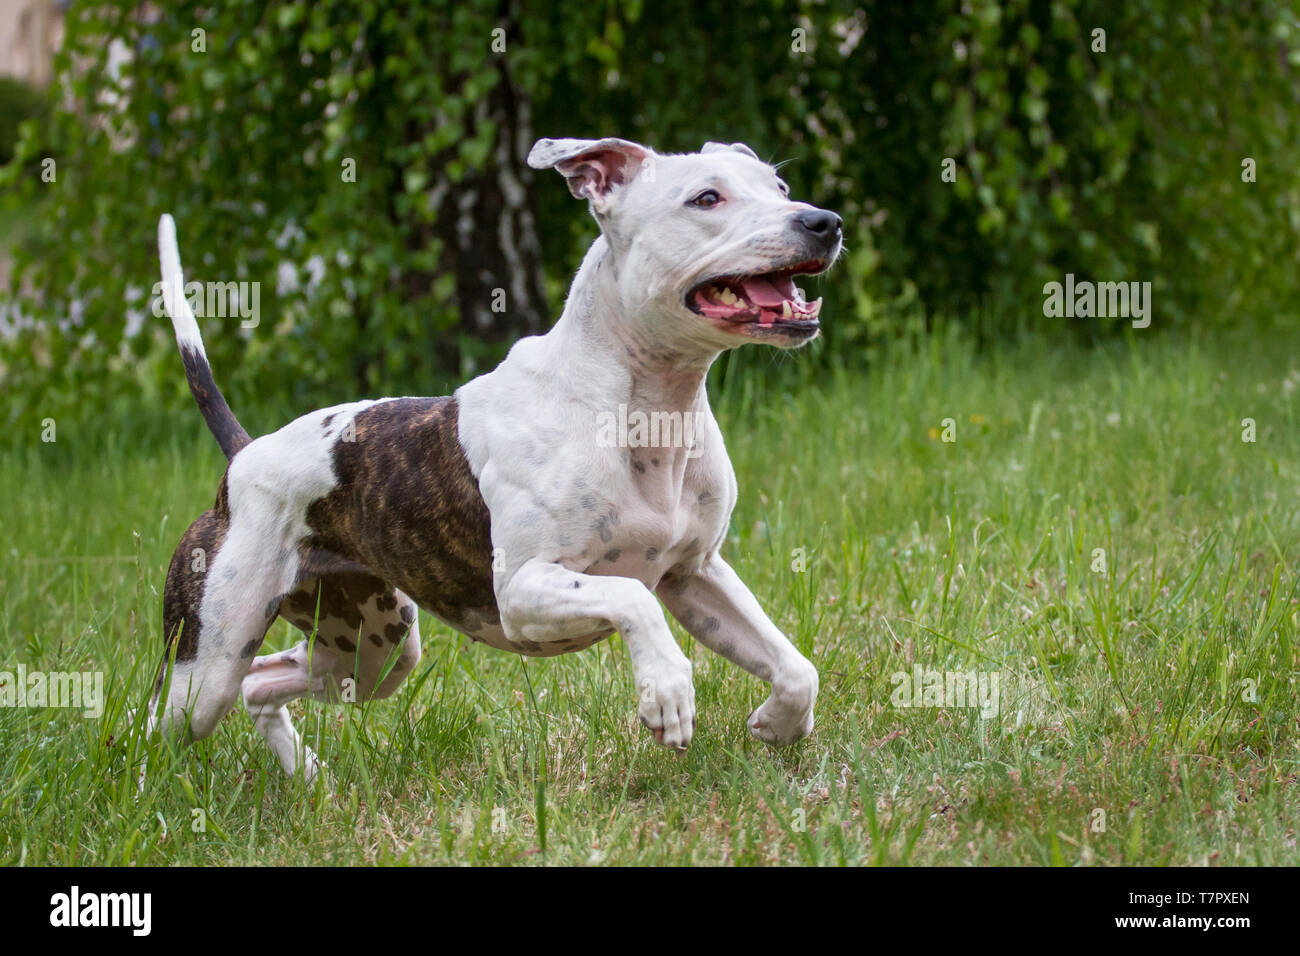 White and brindle American Pit Bull Terrier female dog running - Stock Image